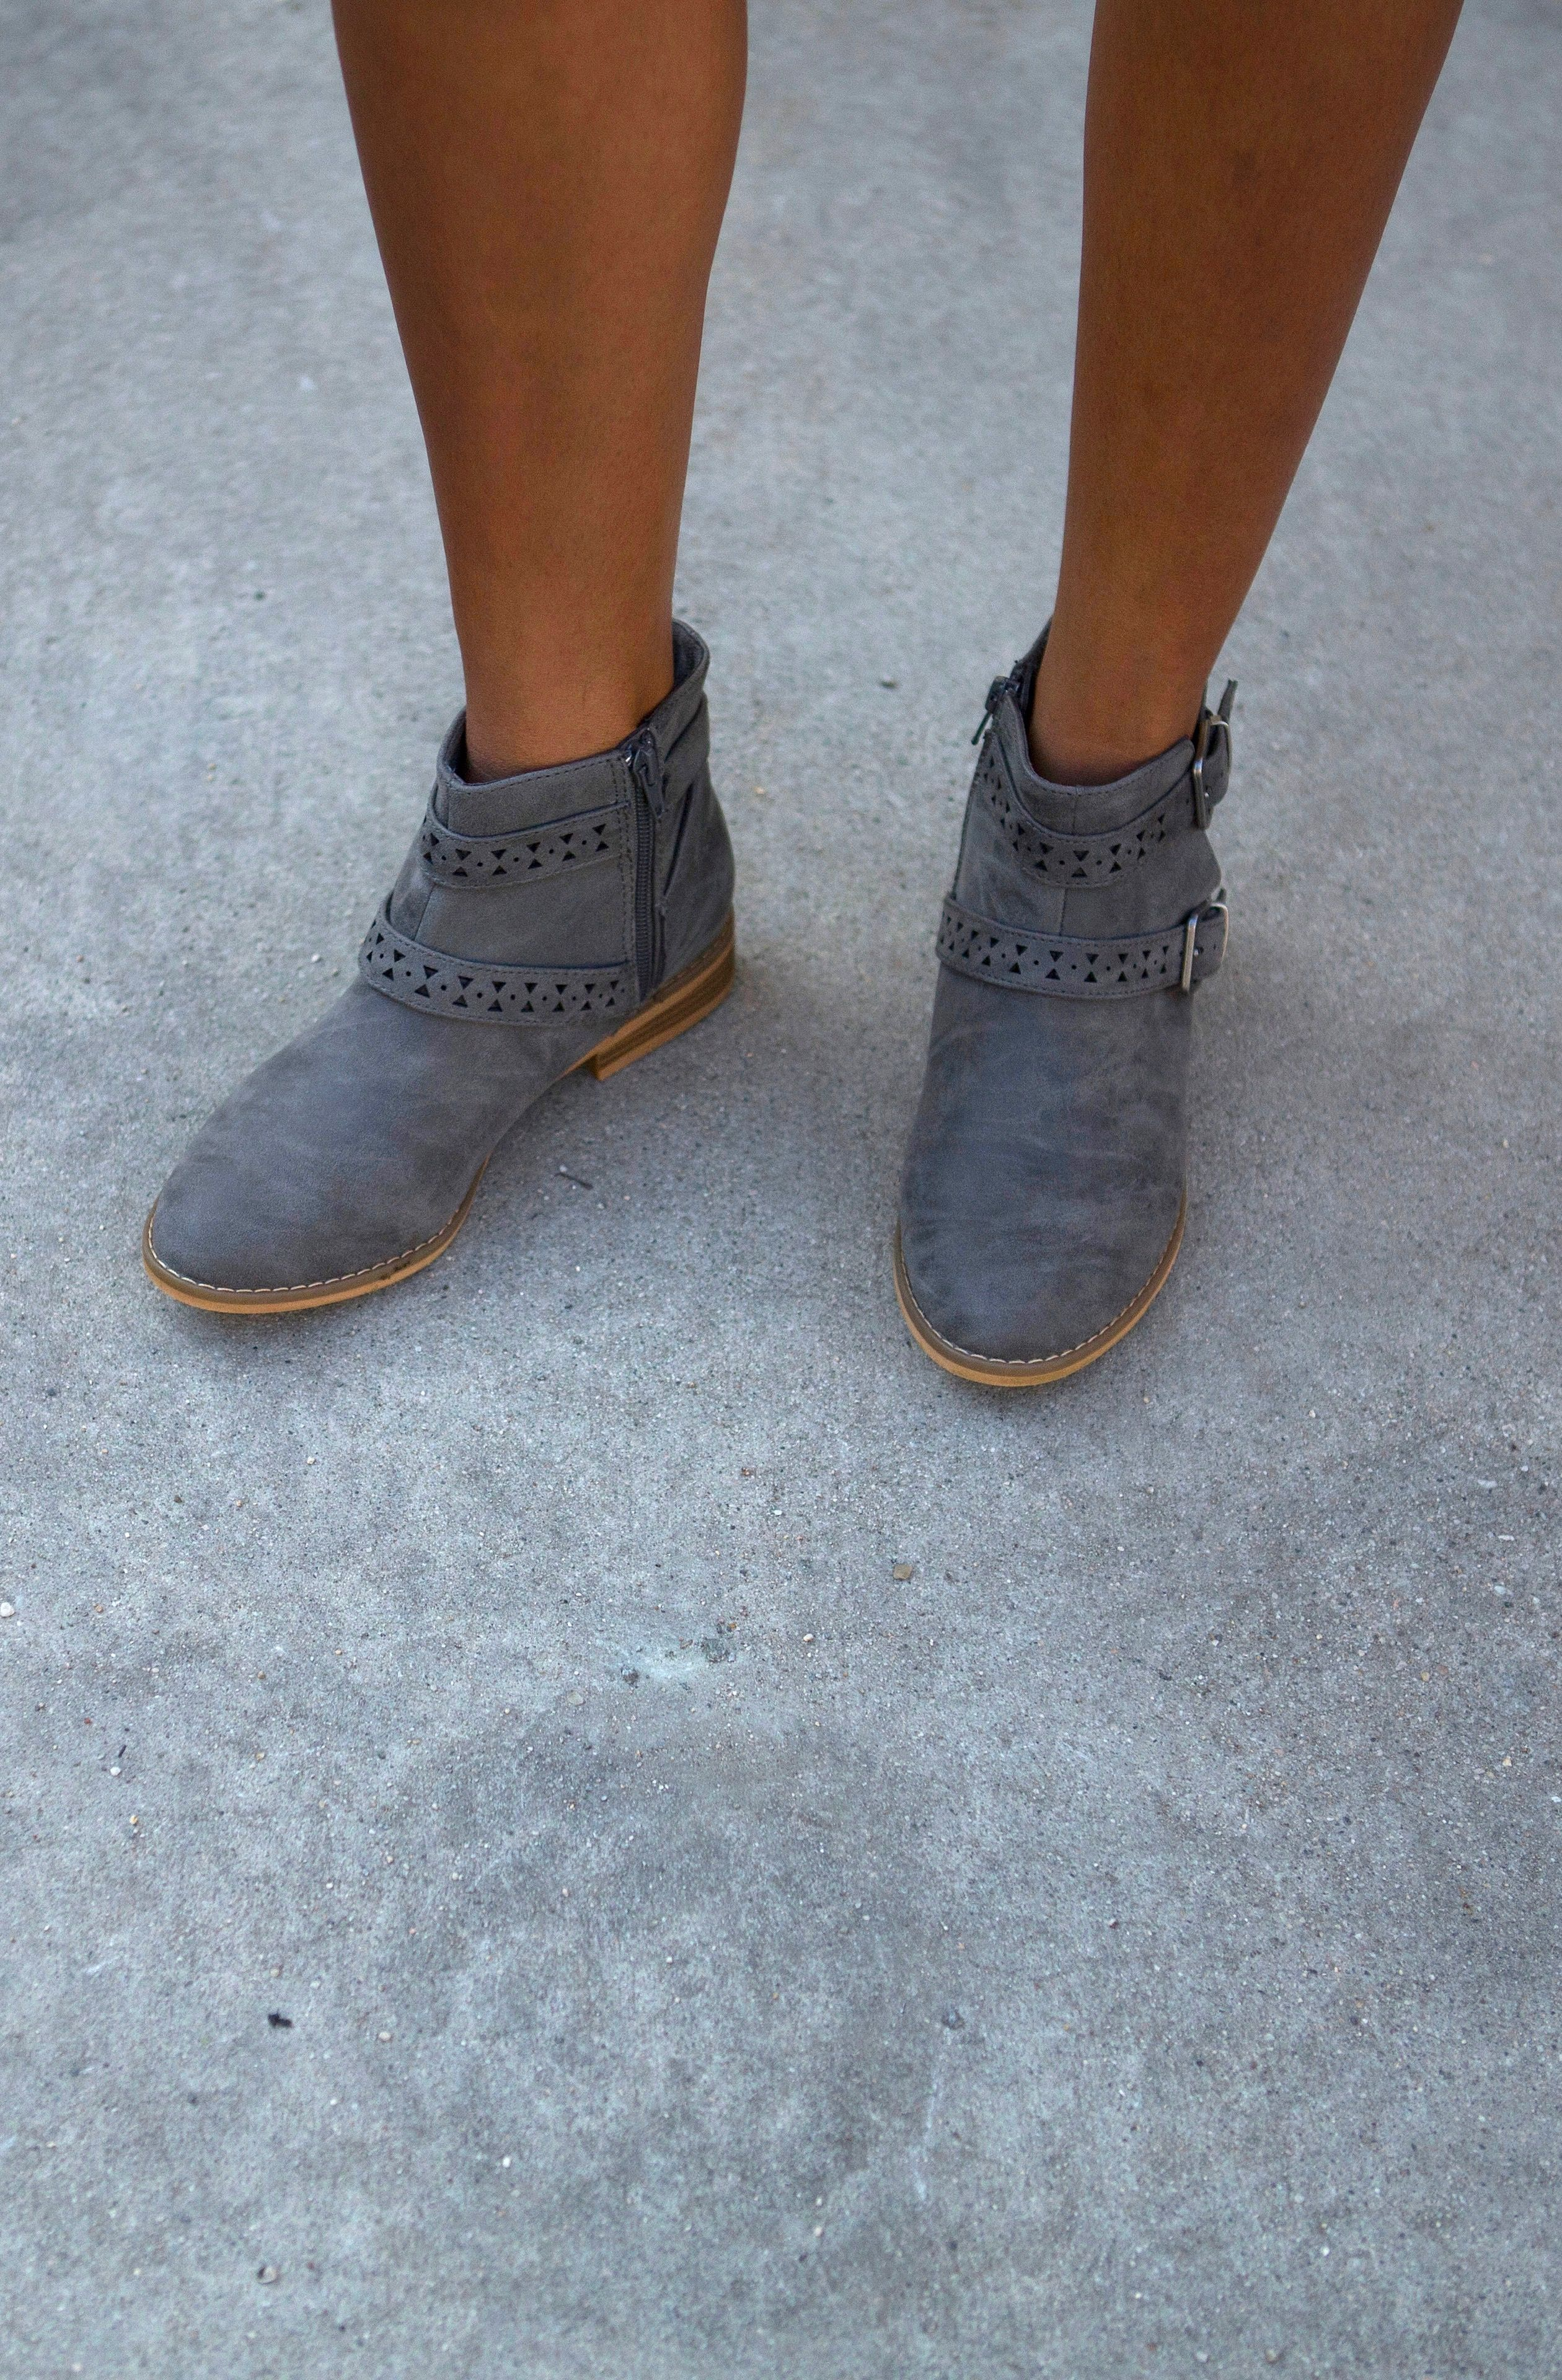 8d4e5614f3f Strap into the Mack boot in Grey and work that Coachella look all season  long. With embellished straps that wrap up the top